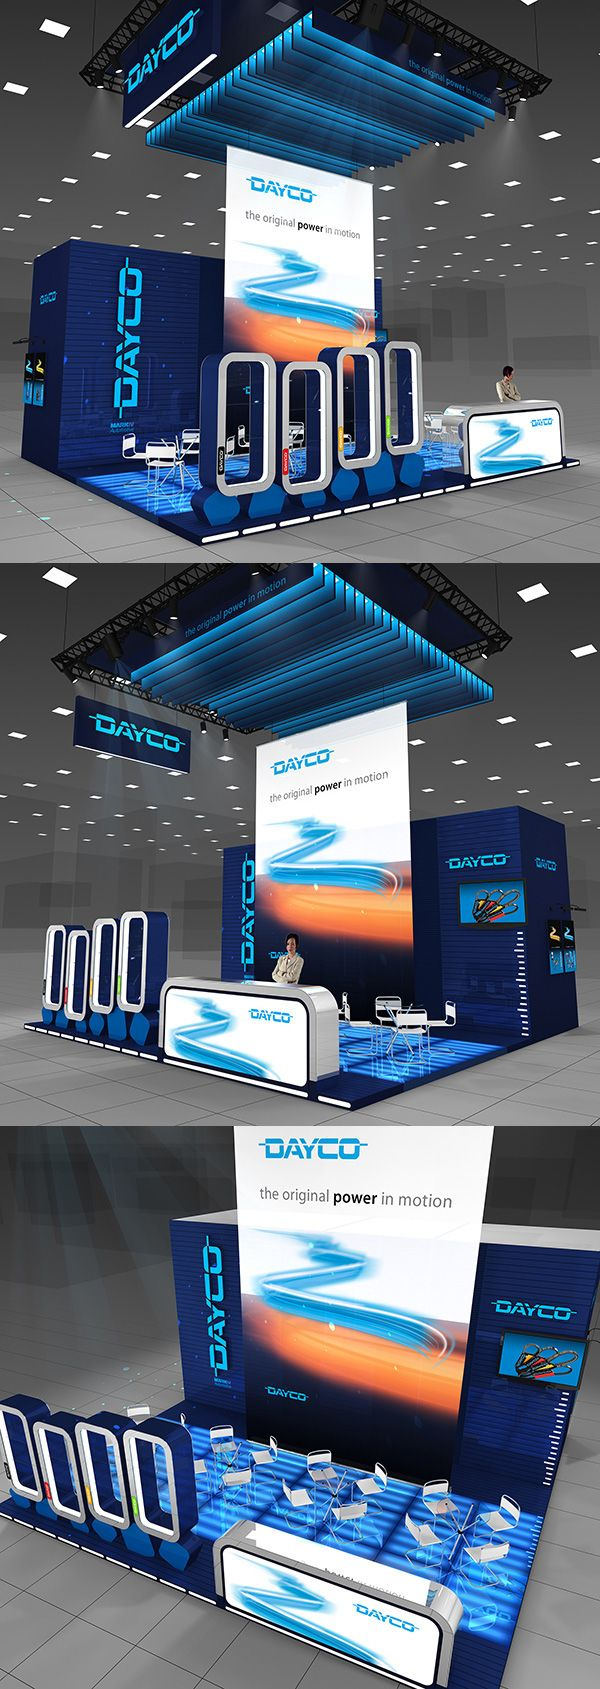 Exhibition Stand Behance : Best images about trade exhibition booth branding